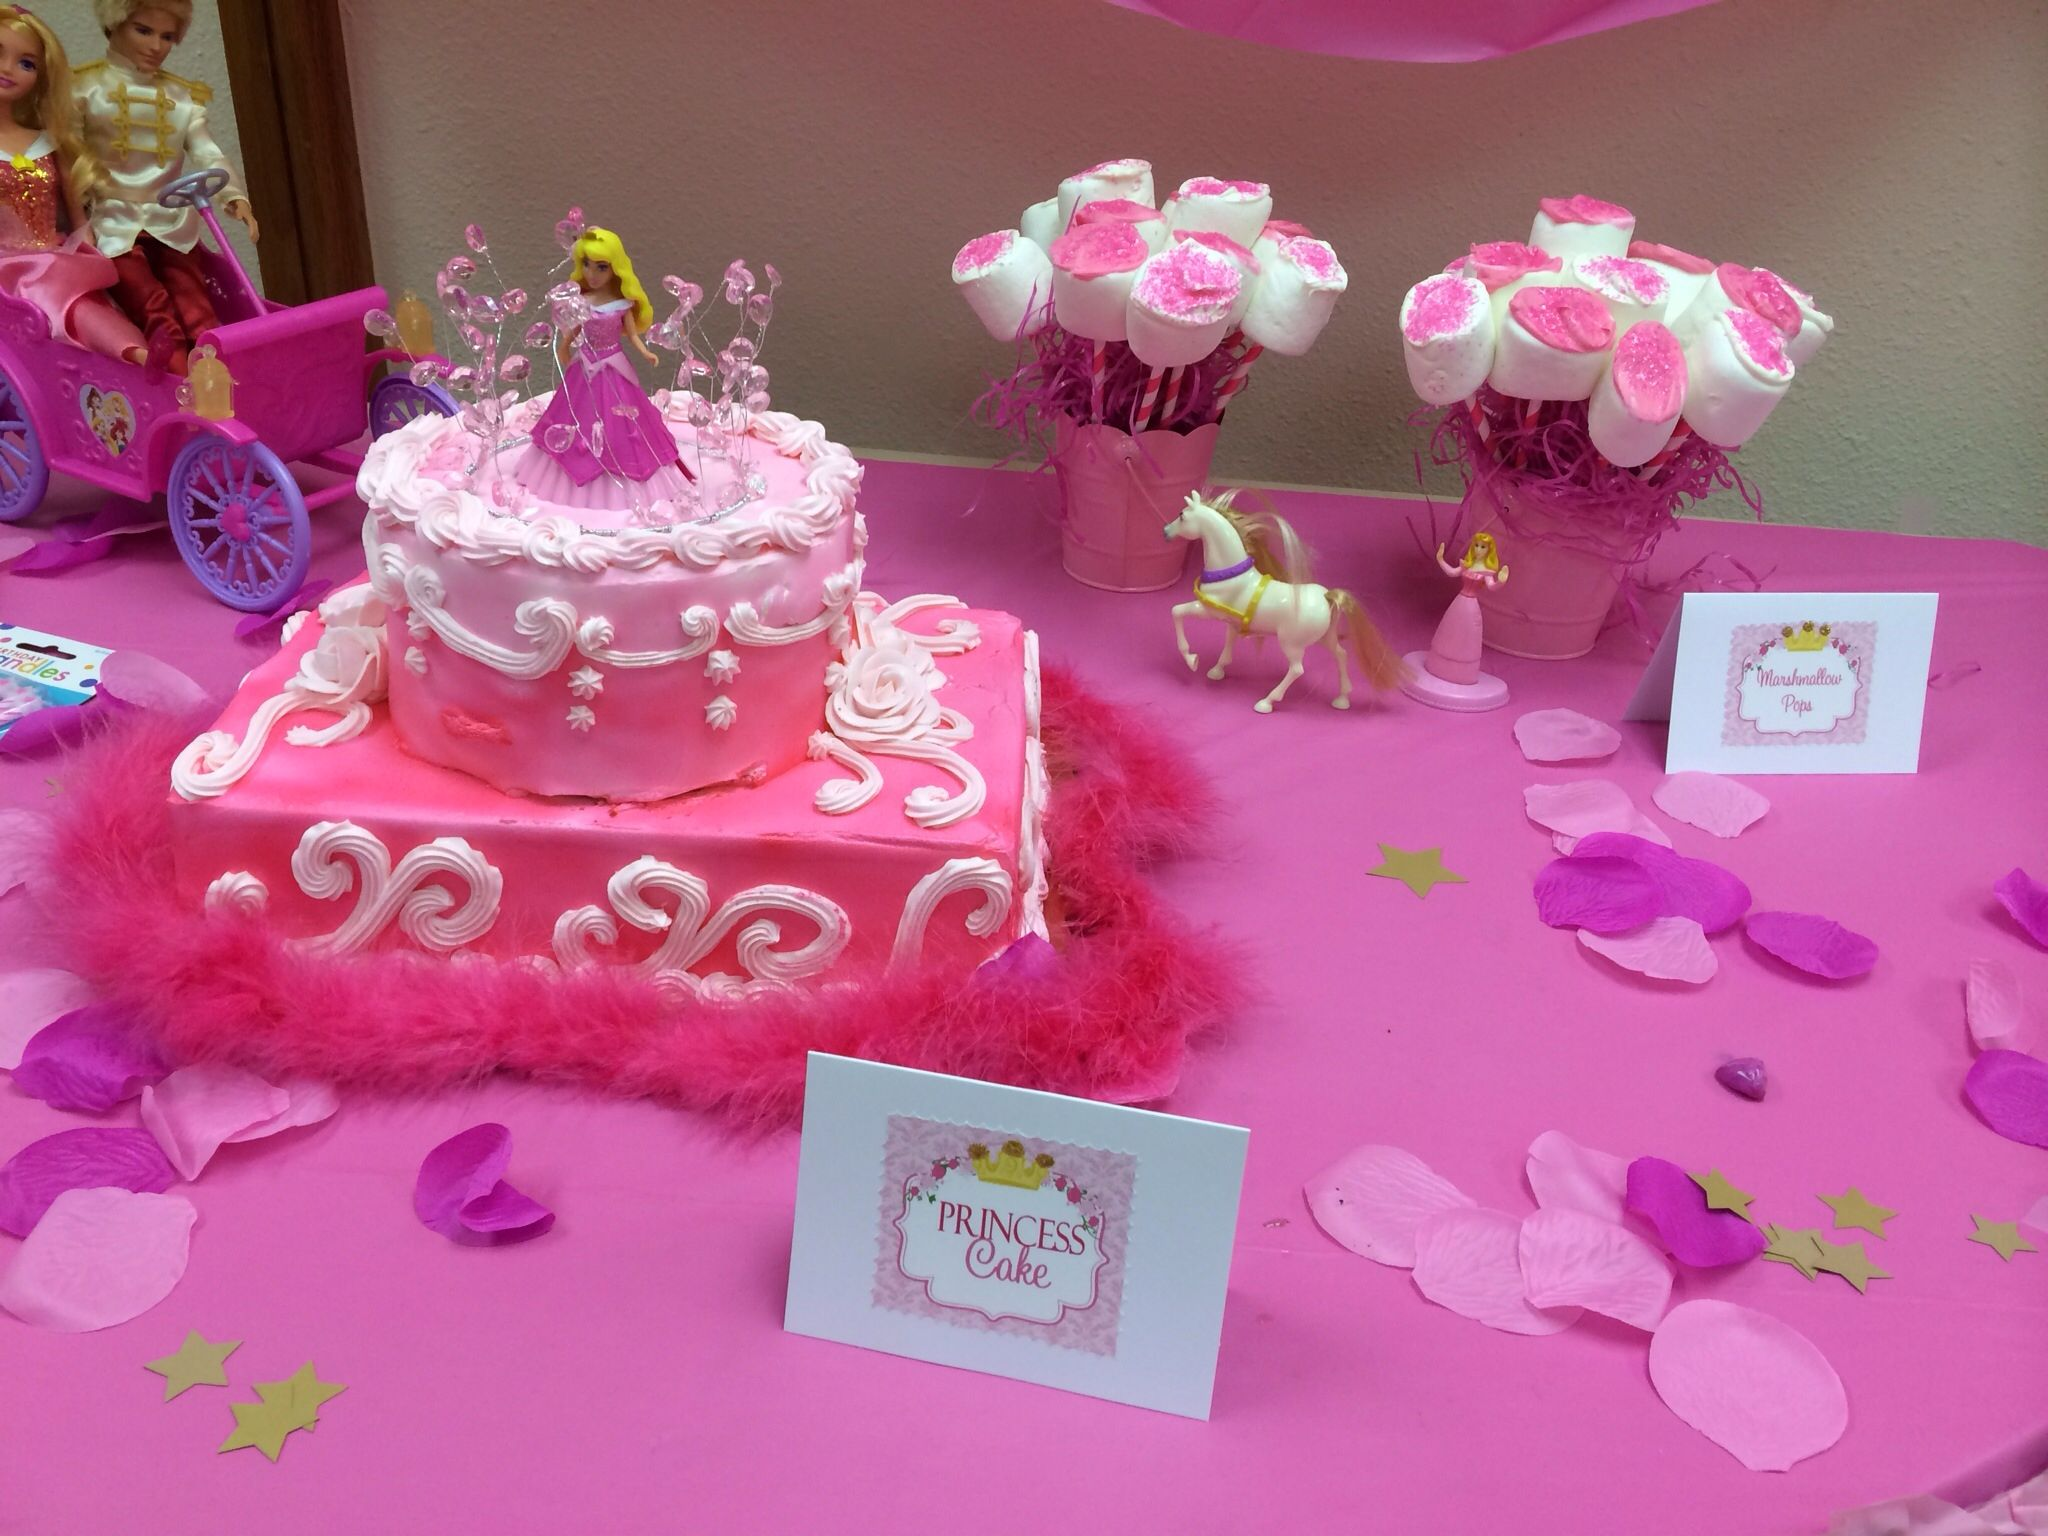 Princess Cake Publix Sweet Sixteen Done In Shades Of Pink